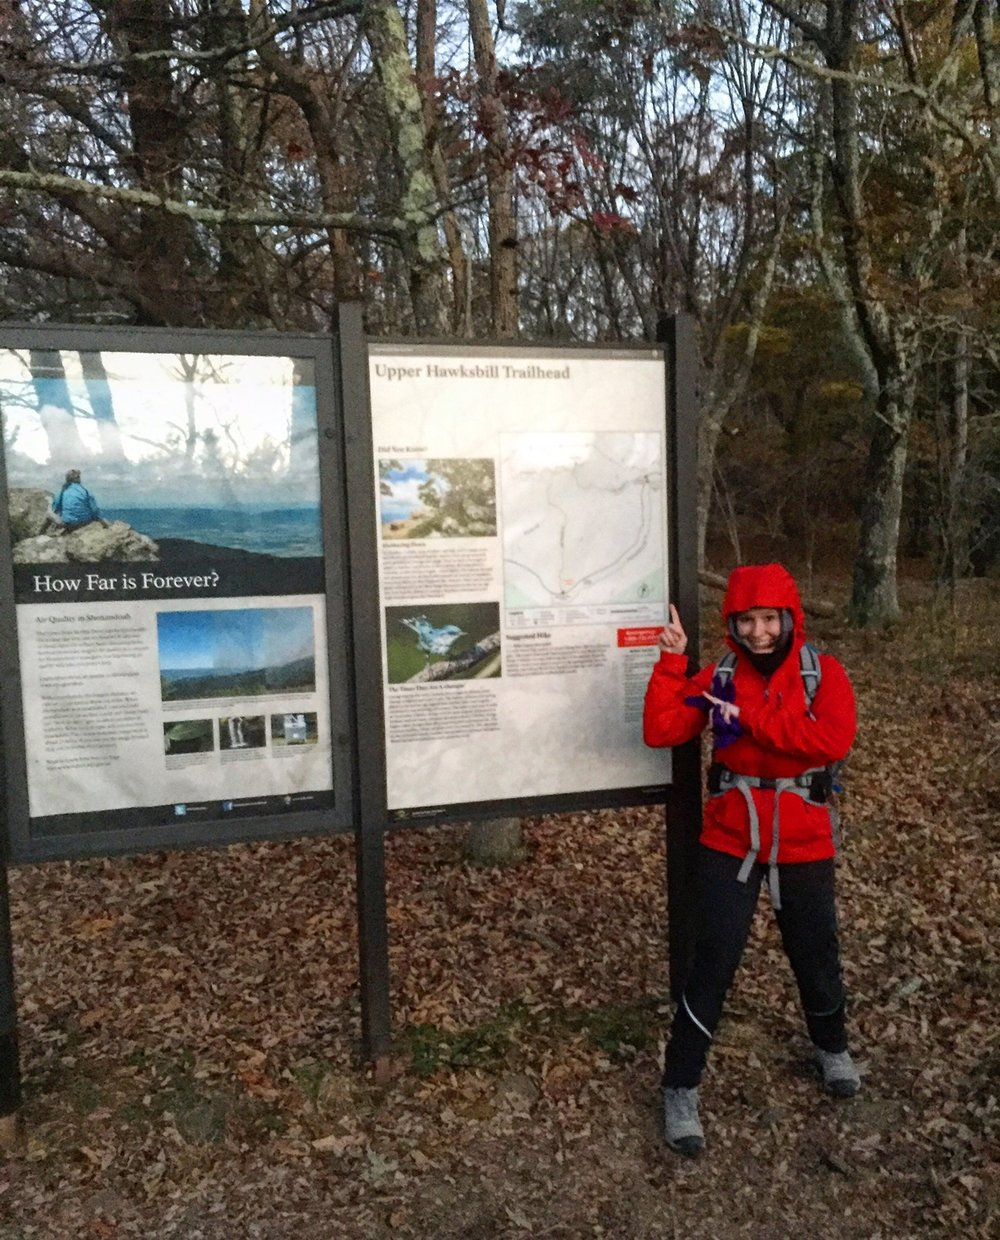 Hey, that's me in front of the trail sign bundled in a ton of layers because it was so cold!